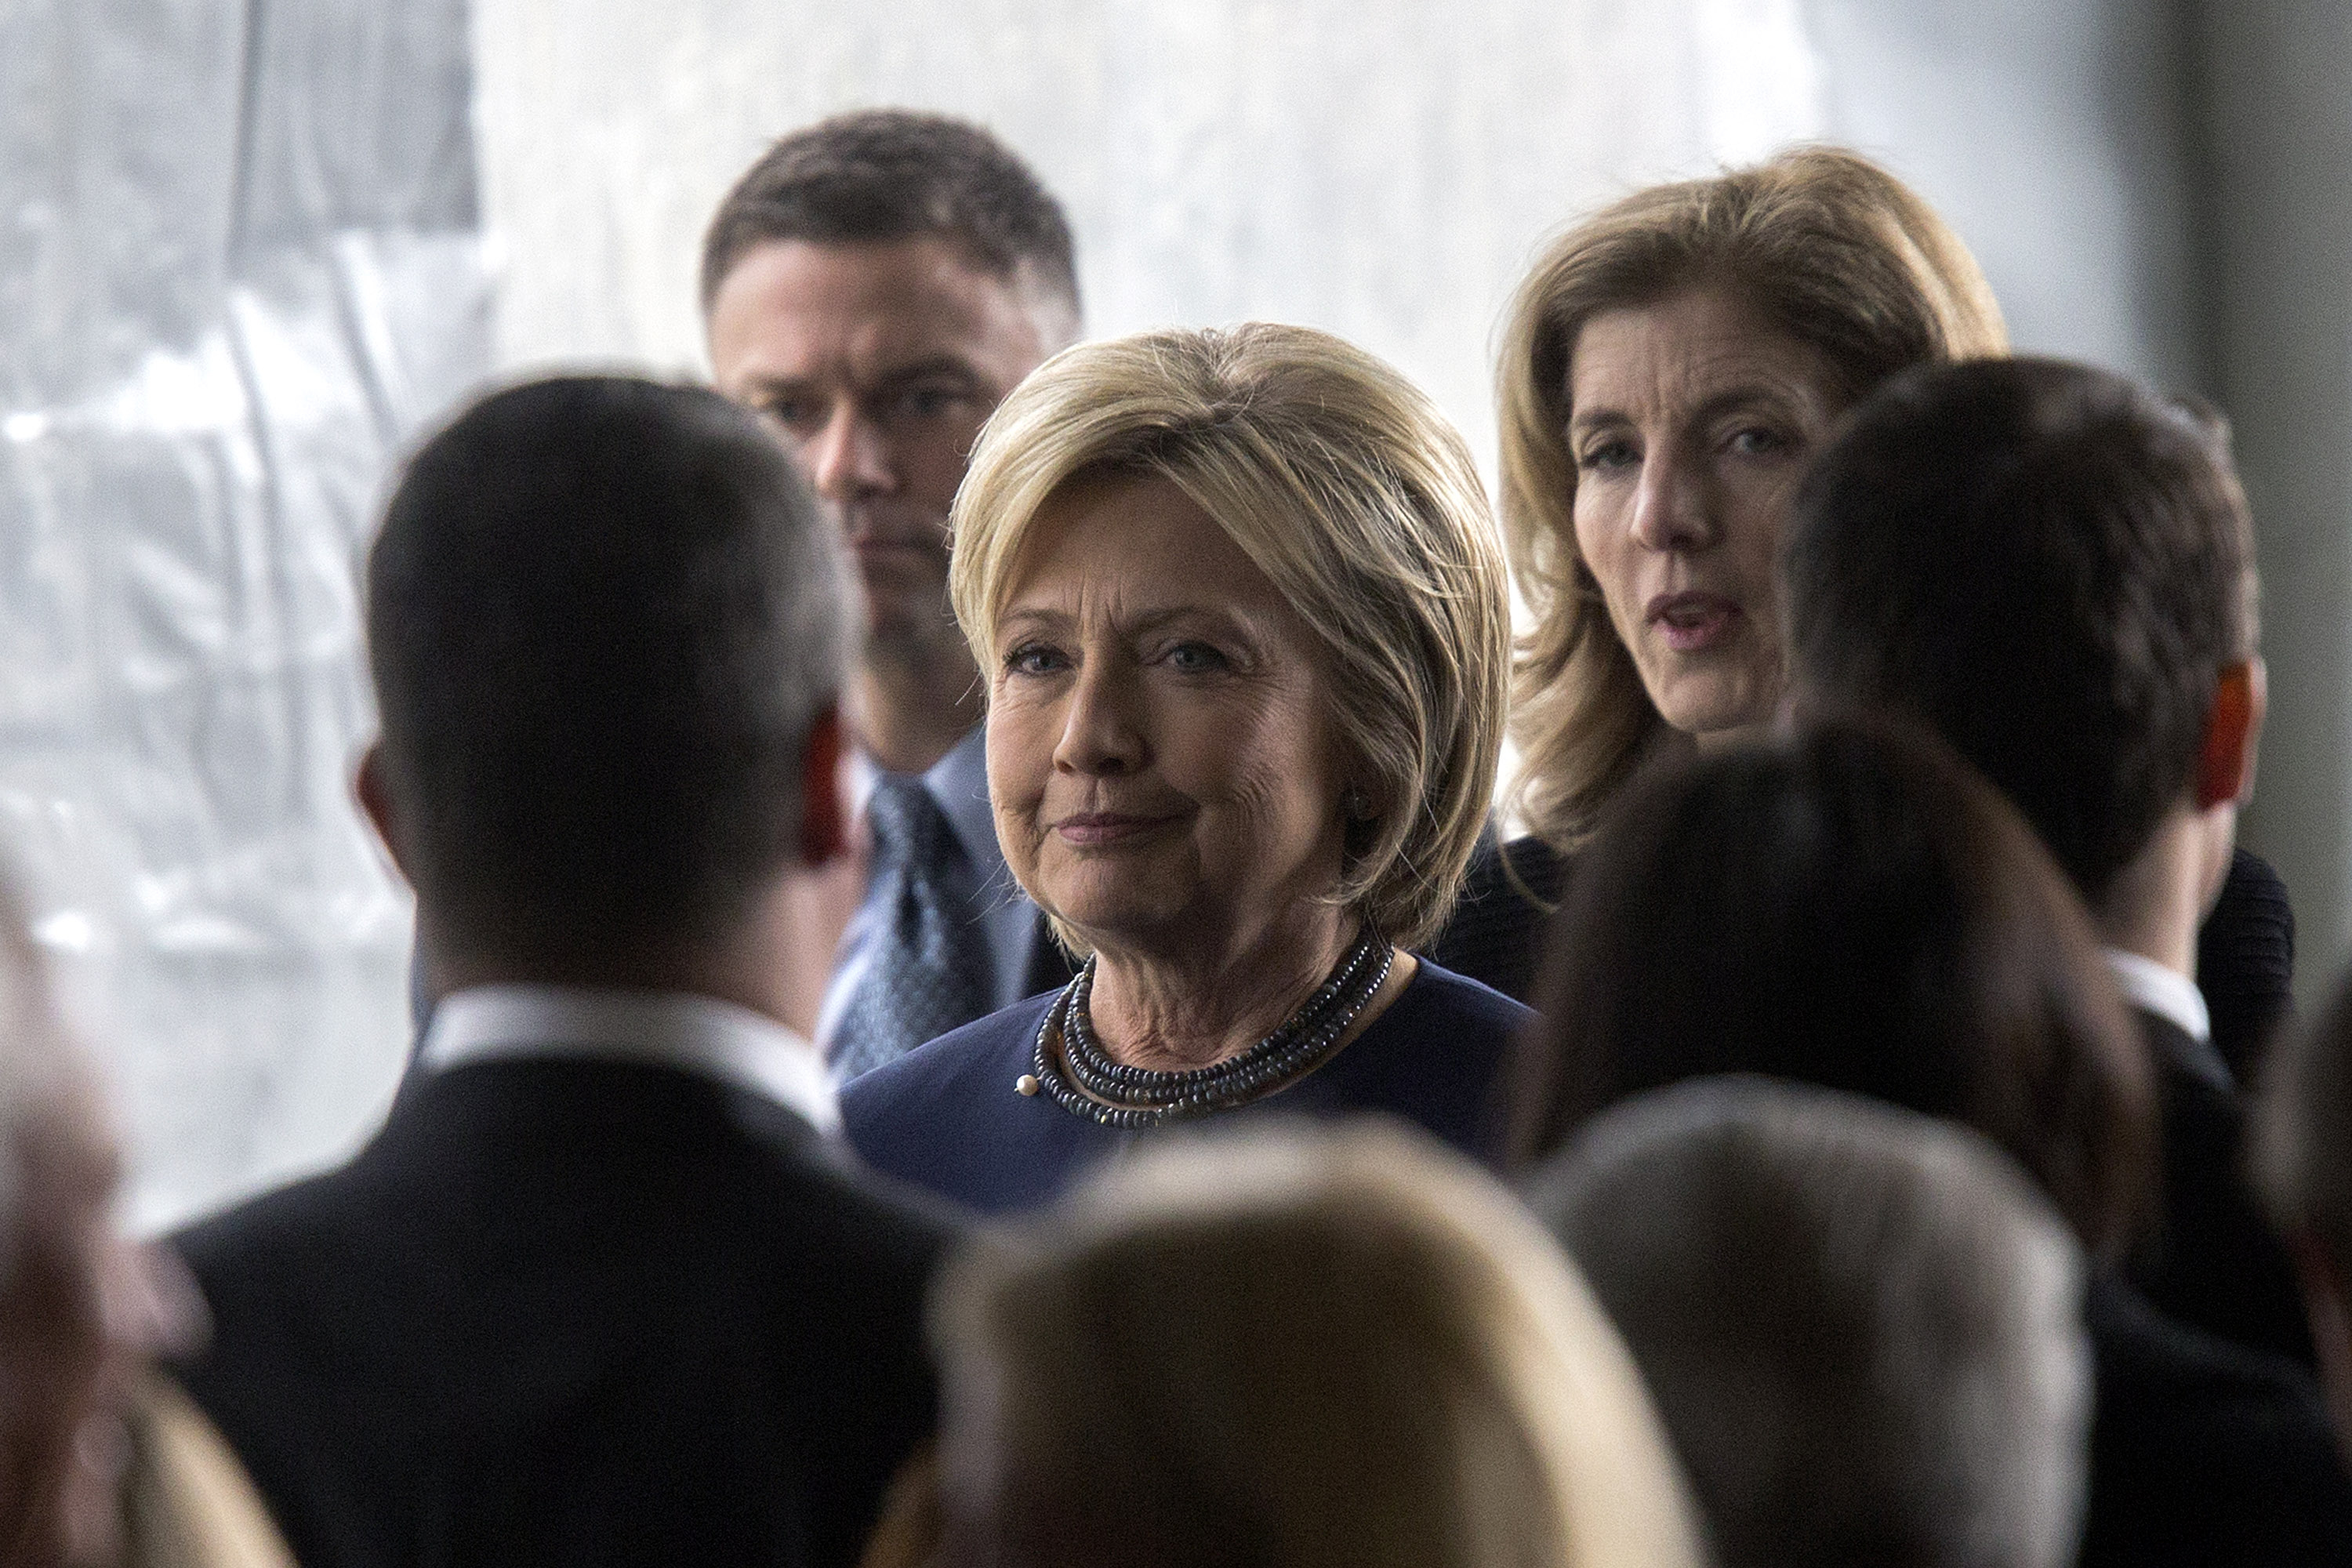 Democratic presidential candidate Hillary Clinton follows the casket during funeral and burial services for former first lady Nancy Reagan at the Ronald Reagan Presidential Library on March 11, 2016 in Simi Valley, Calif.